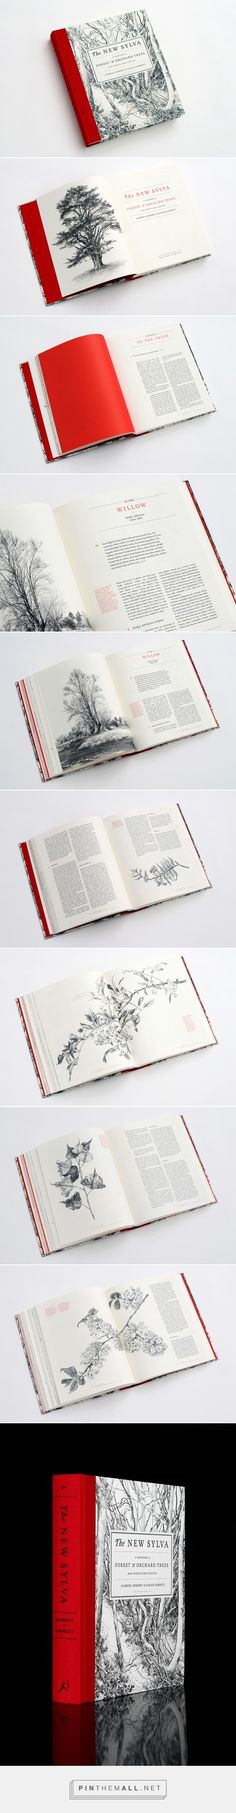 Book Design Inspiration: The New Sylva - Celebrating the UK\'s Forests and Trees - created via http://pinthemall.net